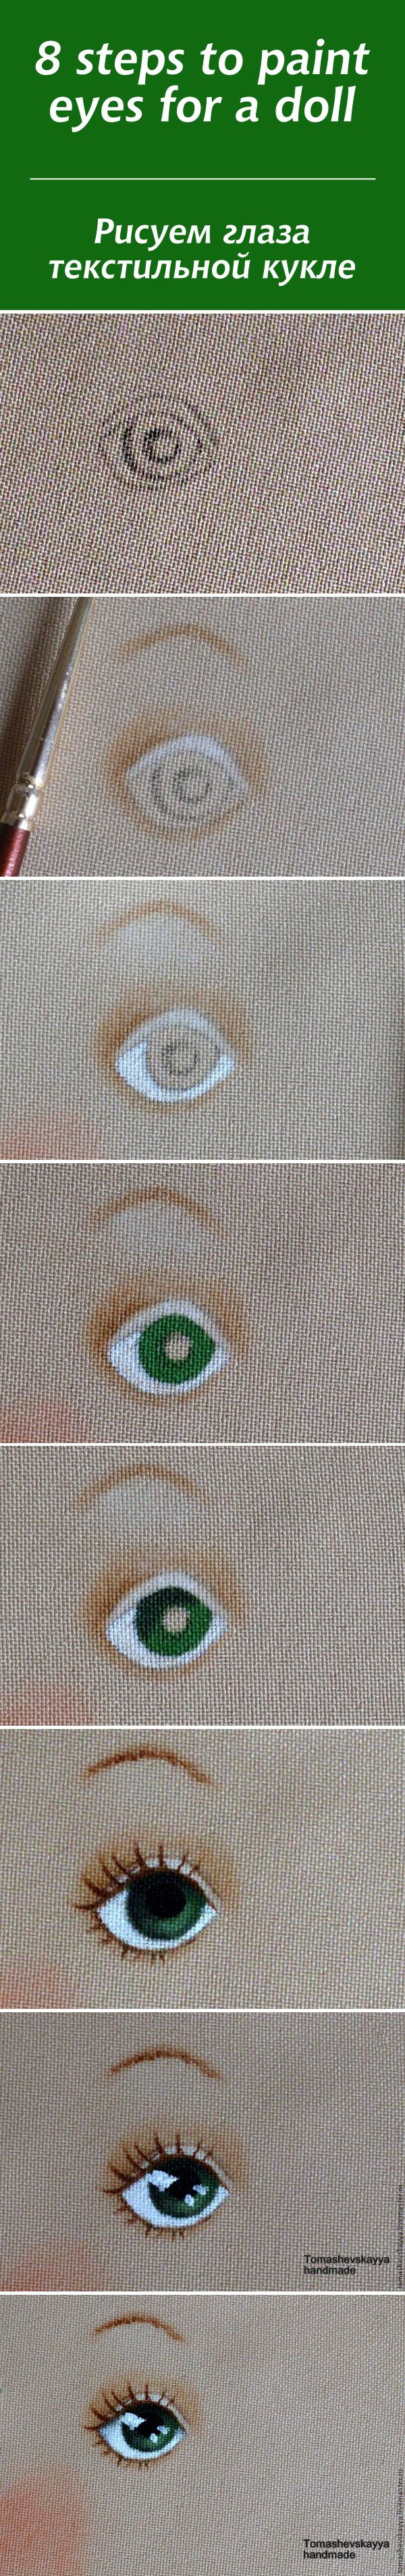 8 Steps To Paint Eyes On A Soft Handmade Doll Tutorial